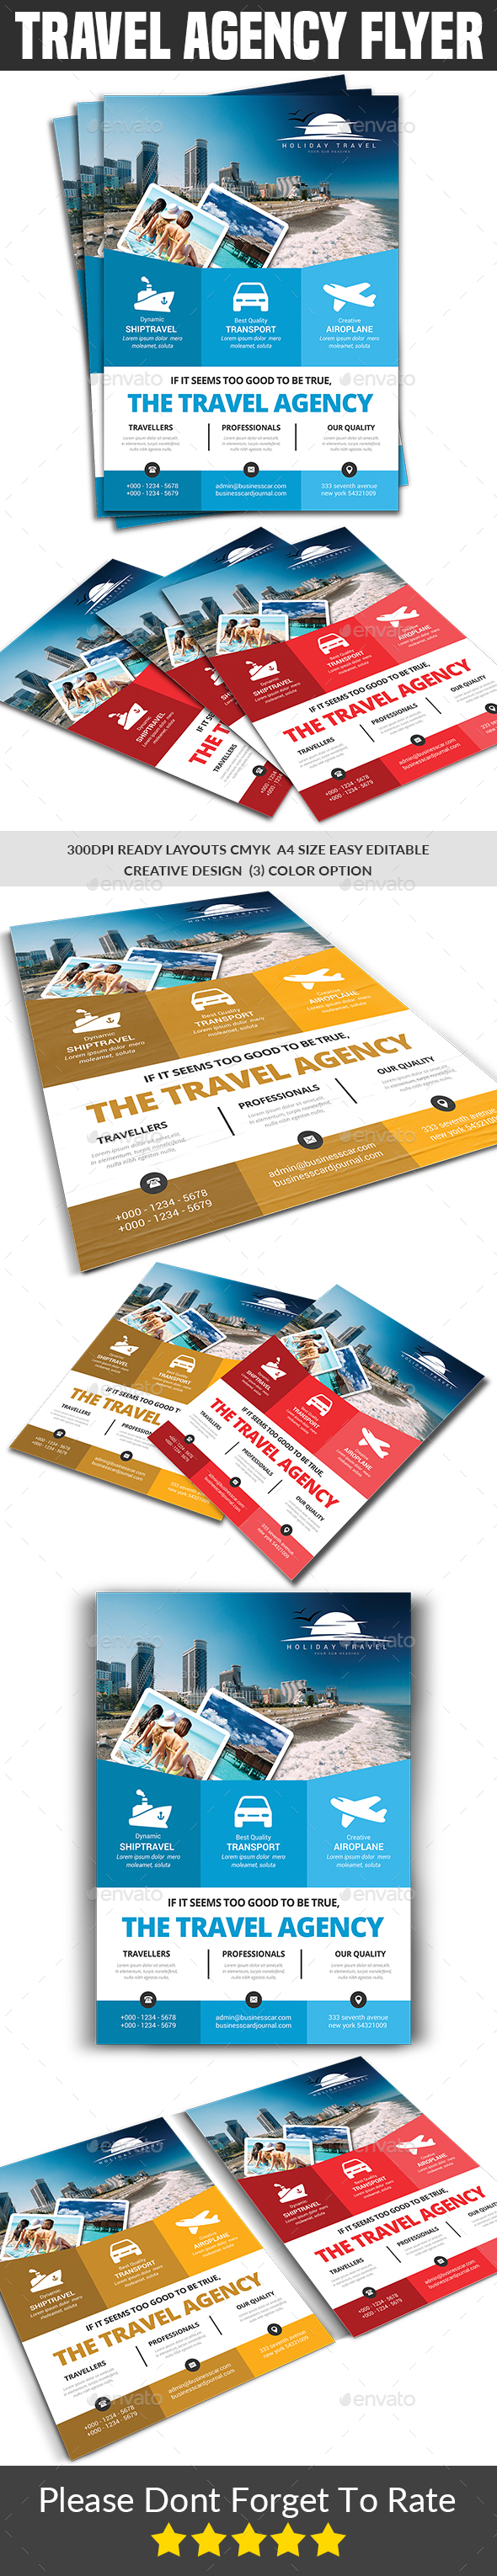 Travel Agency Flyer - Corporate Flyers